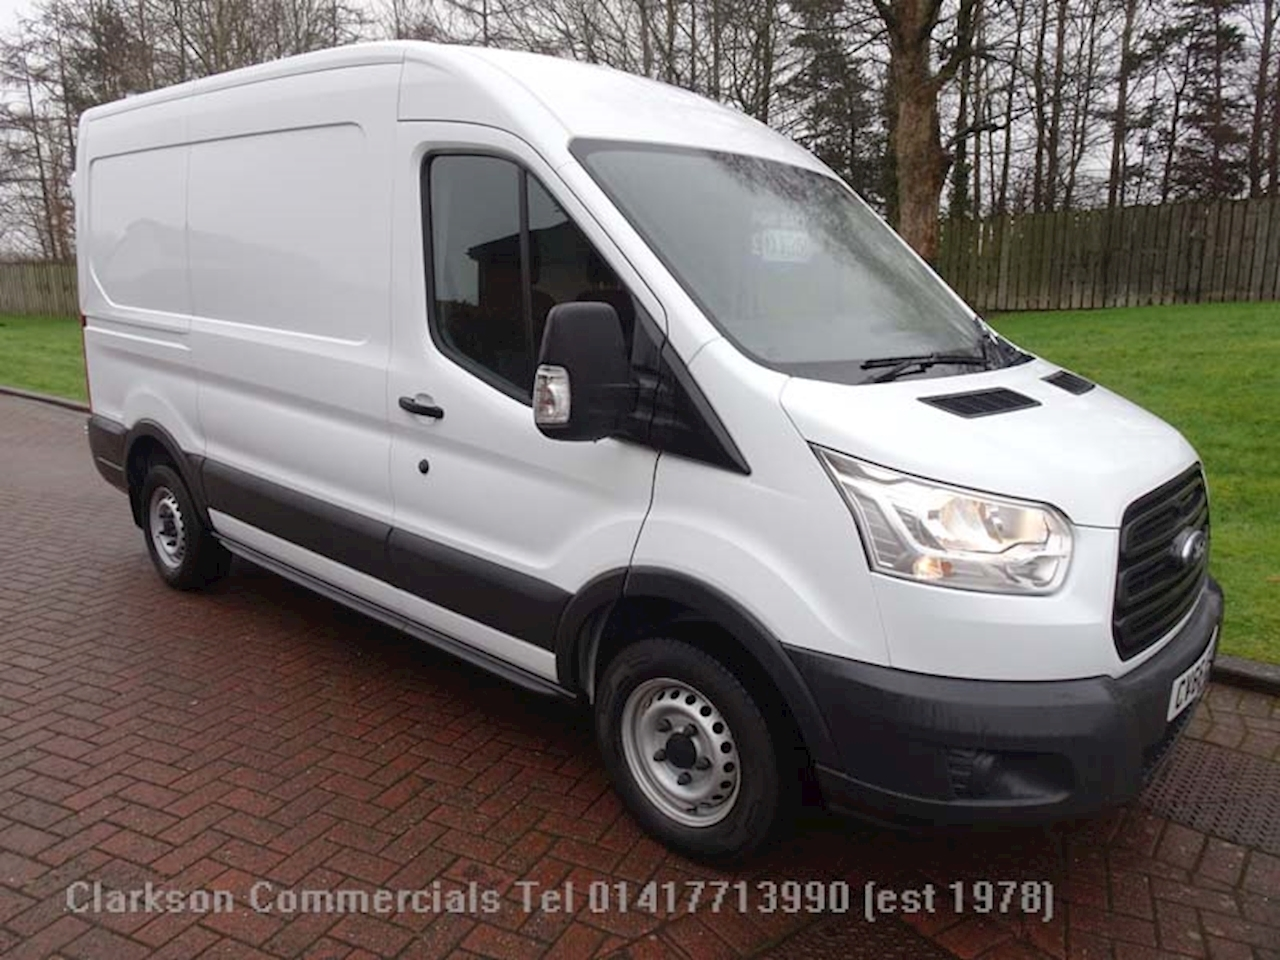 Ford Transit 290 L2H2 (medium wheelbase) 2.2TDCi 2.2 Panel Van Manual Diesel